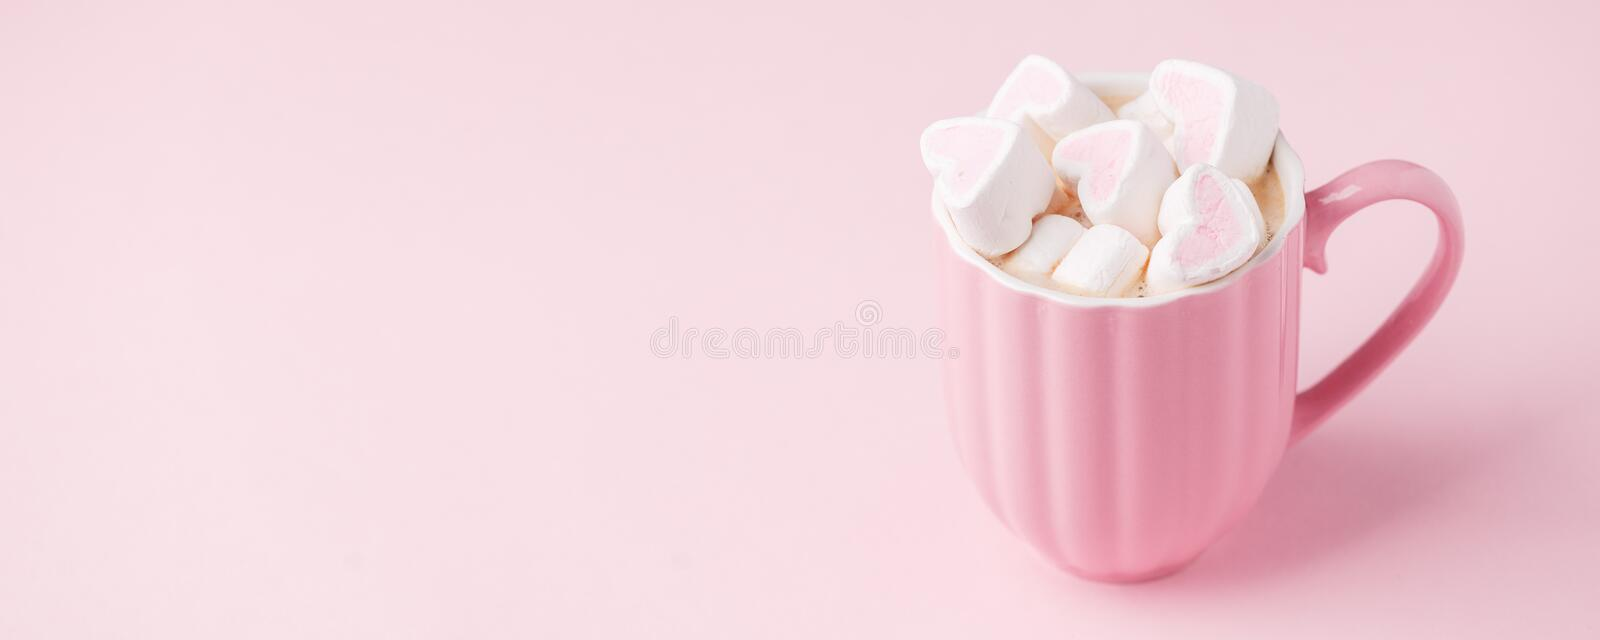 Pink light pastel background. Cup of dark coffee, hearts shaped marshmallow. Valentine`s wedding day concept. Romantic girly royalty free stock images